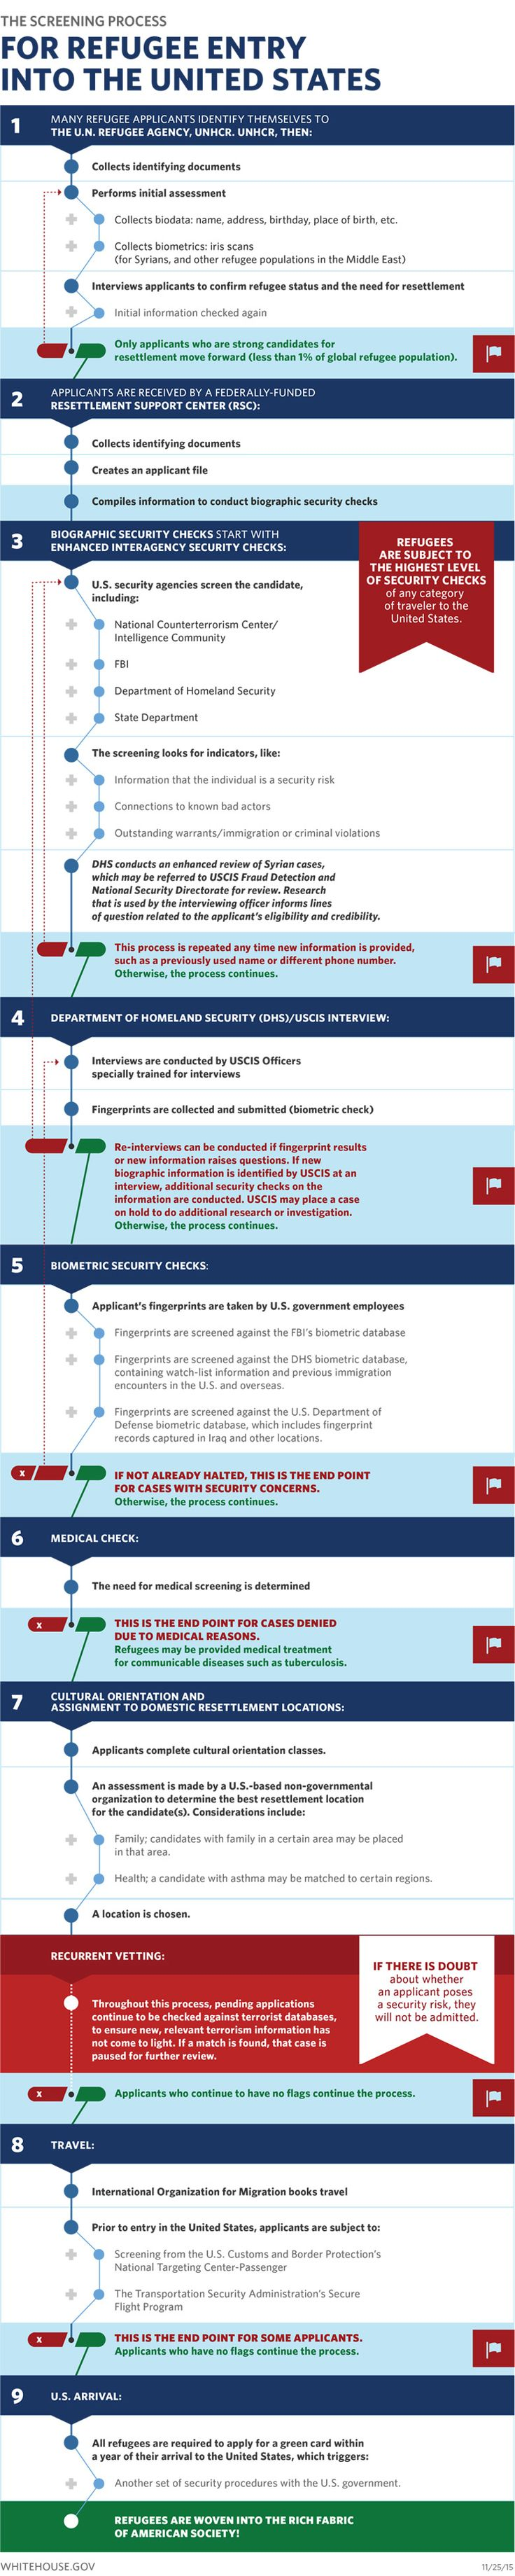 The Screening Process for Refugees Entry Into the United States (full text of the graphic written below the image)